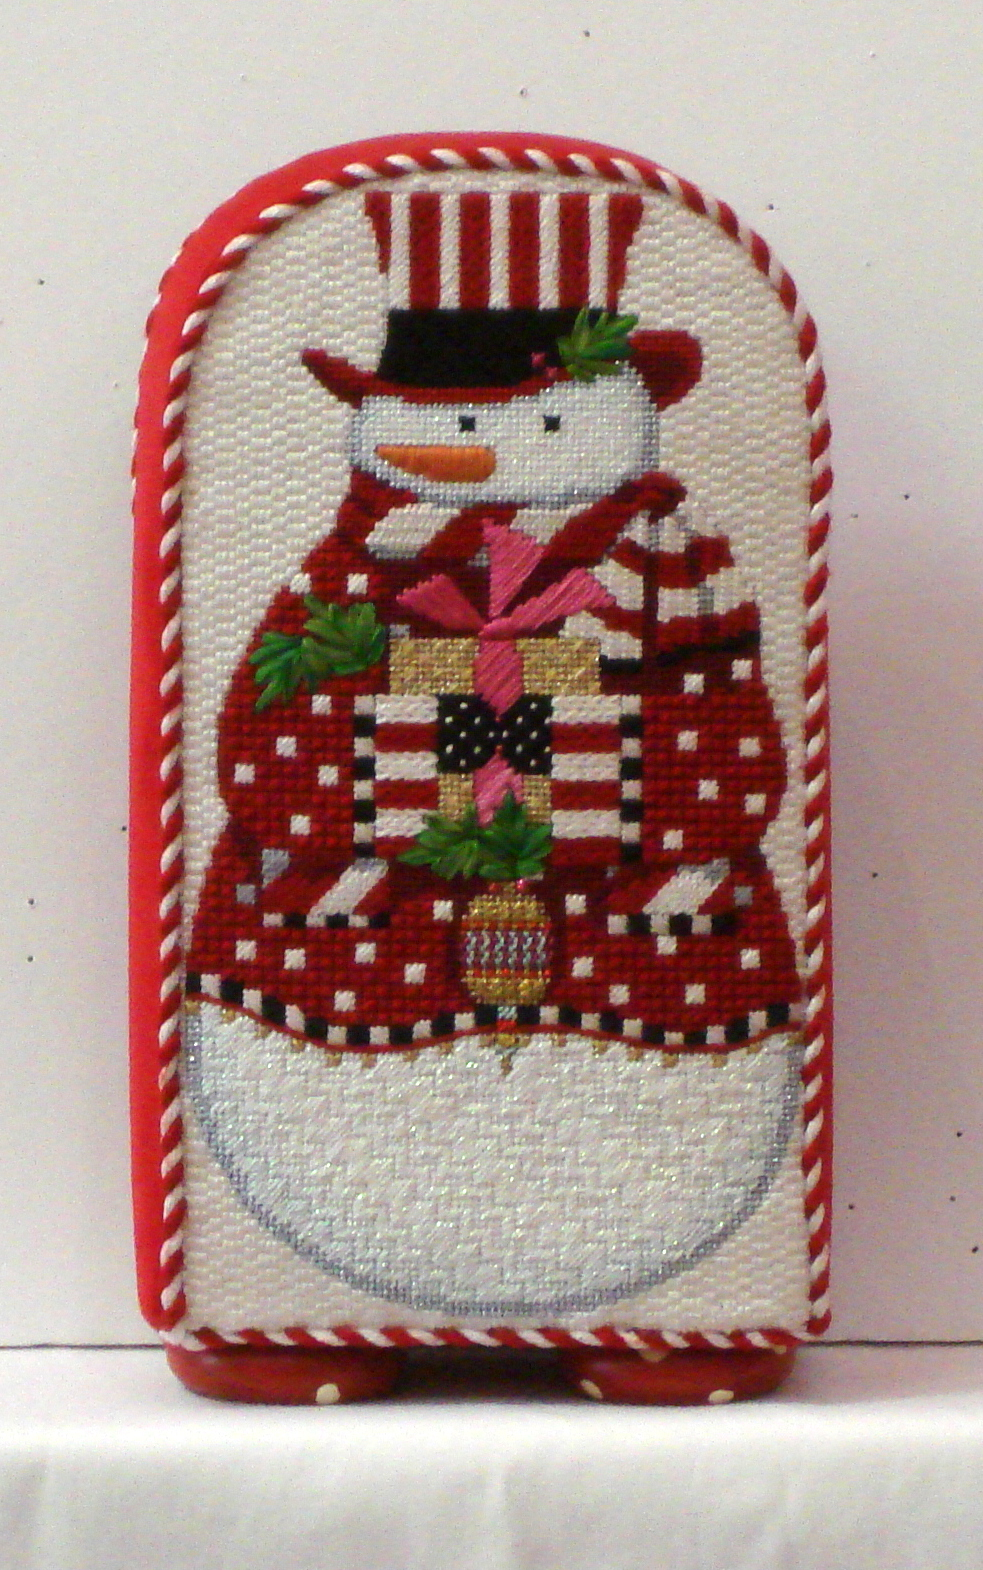 Cheerful Snowman with Red Coat